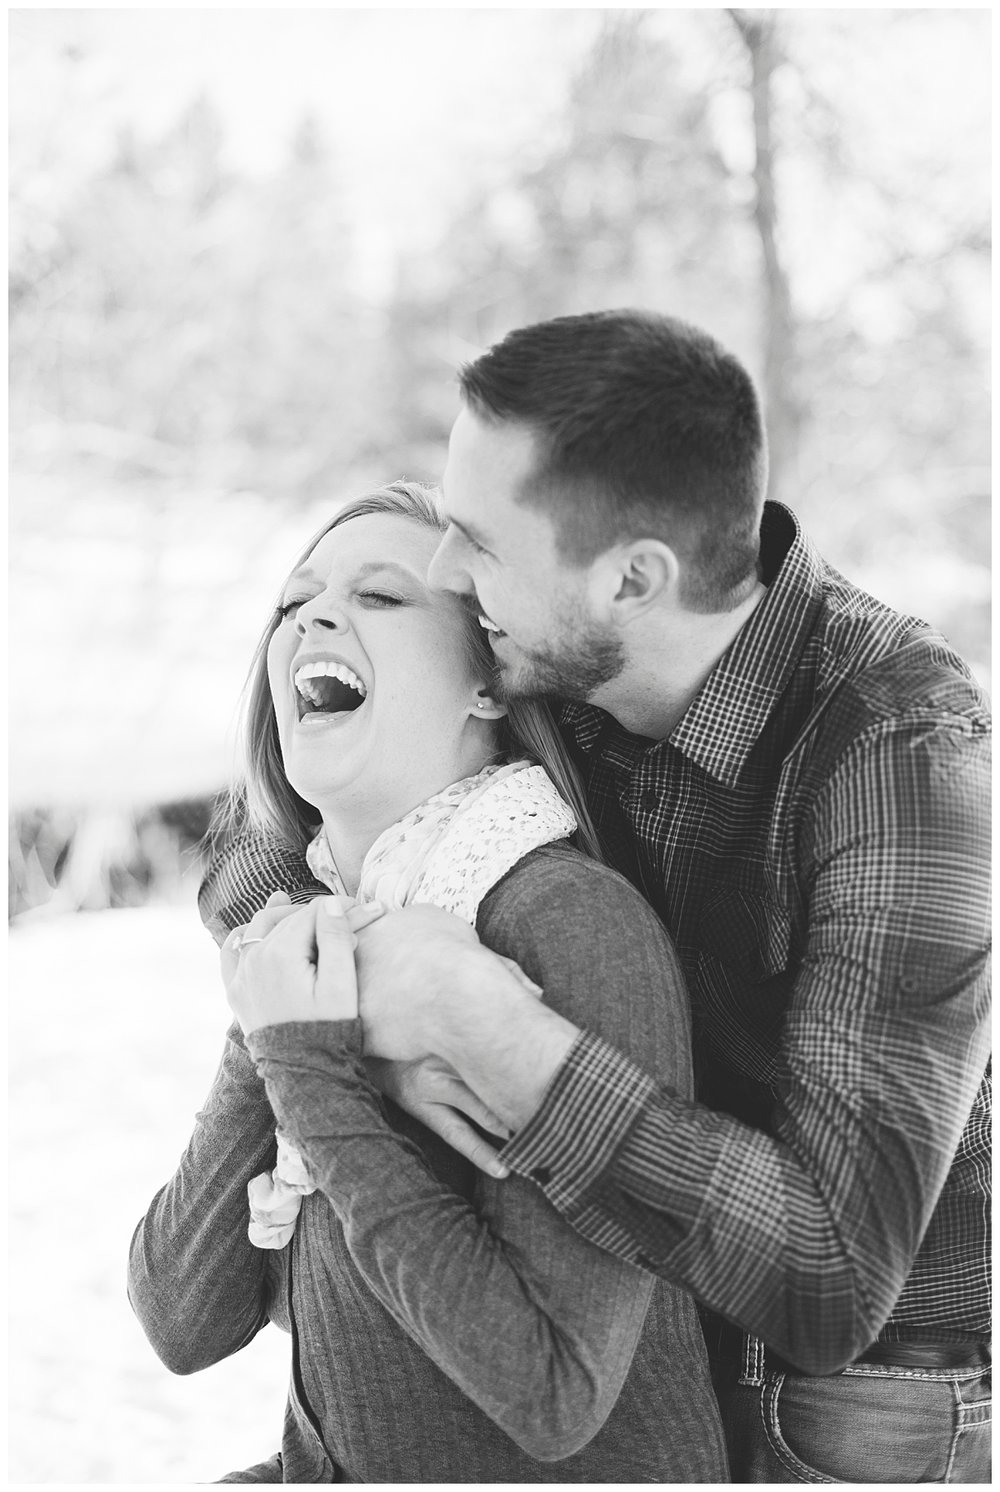 bphotography_winter_siouxfallsweddingphotographer_halfbakedengagementsession_0003.jpg